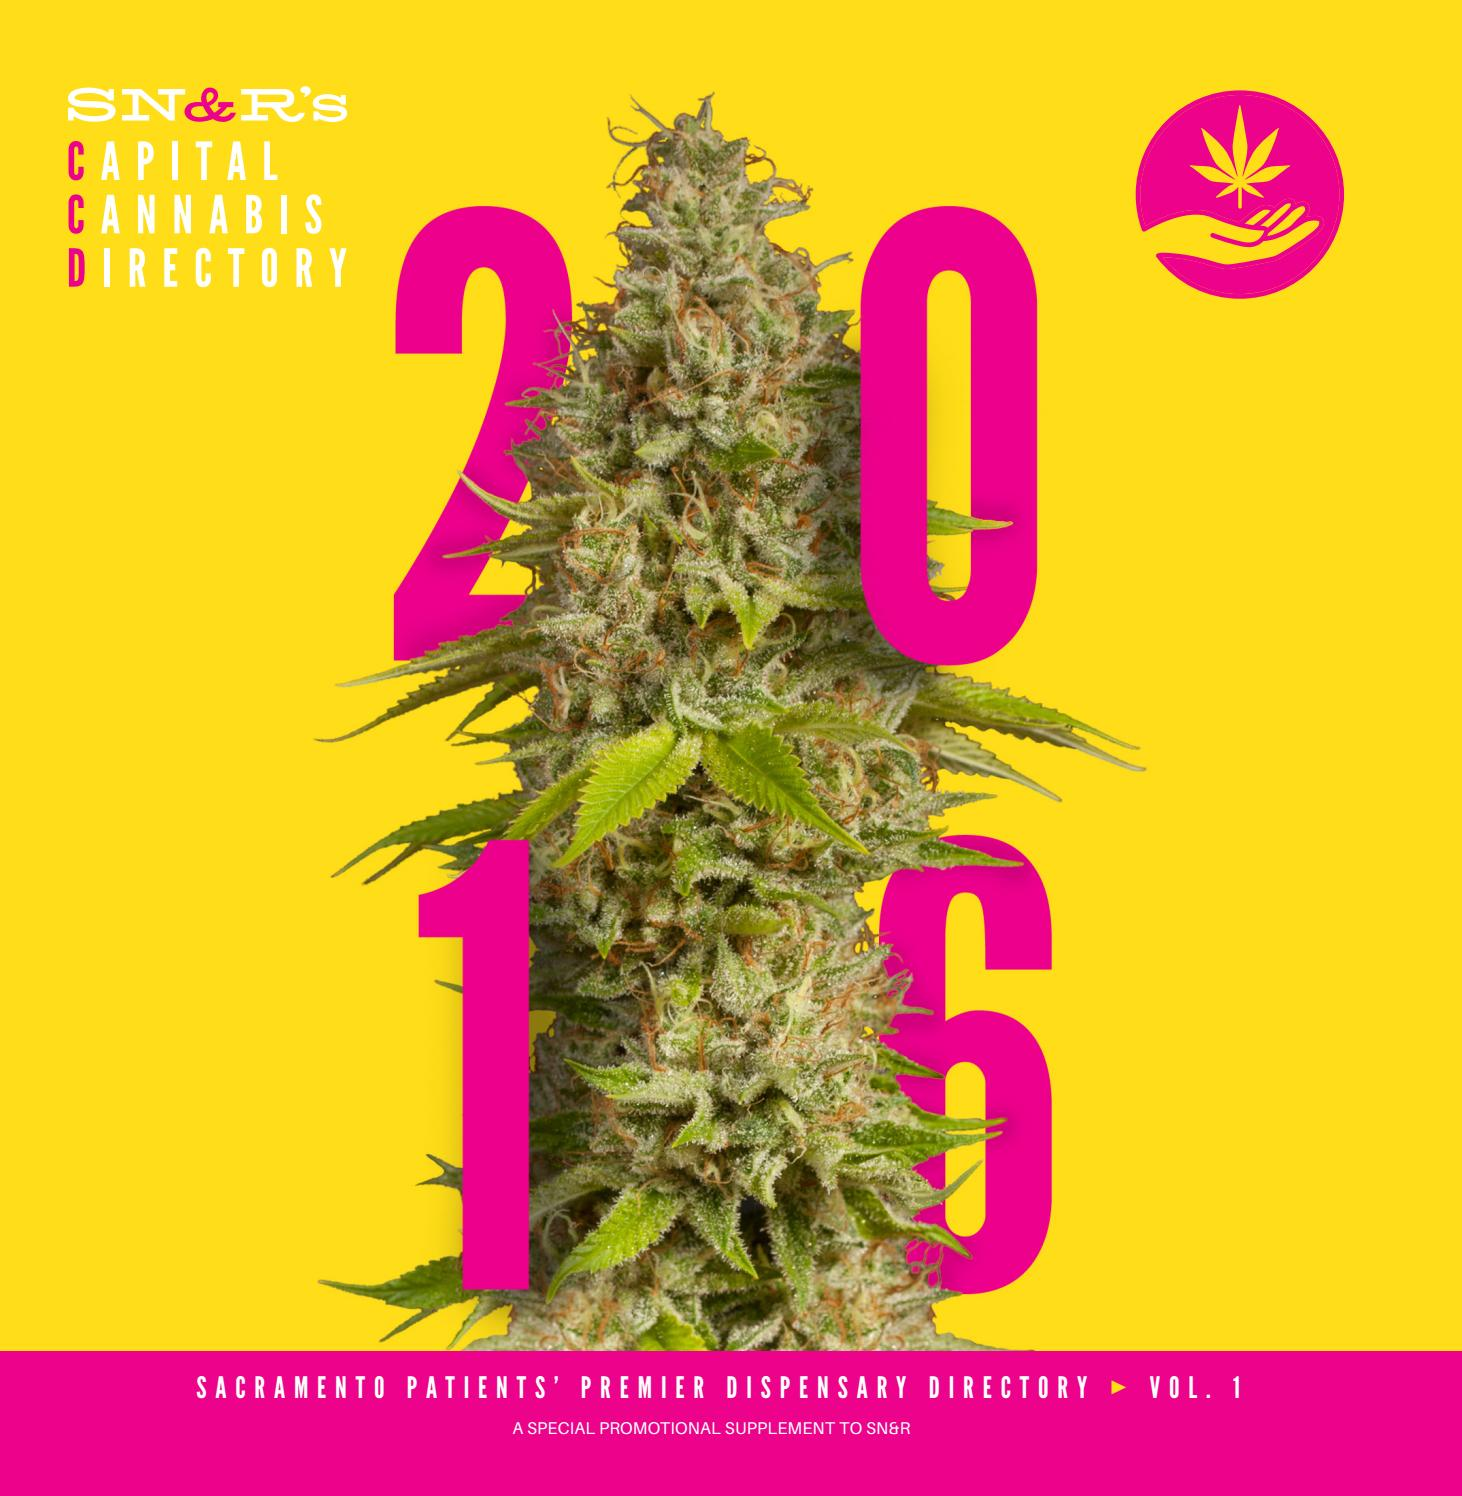 Capital Cannabis Directory 2016 by News & Review - issuu